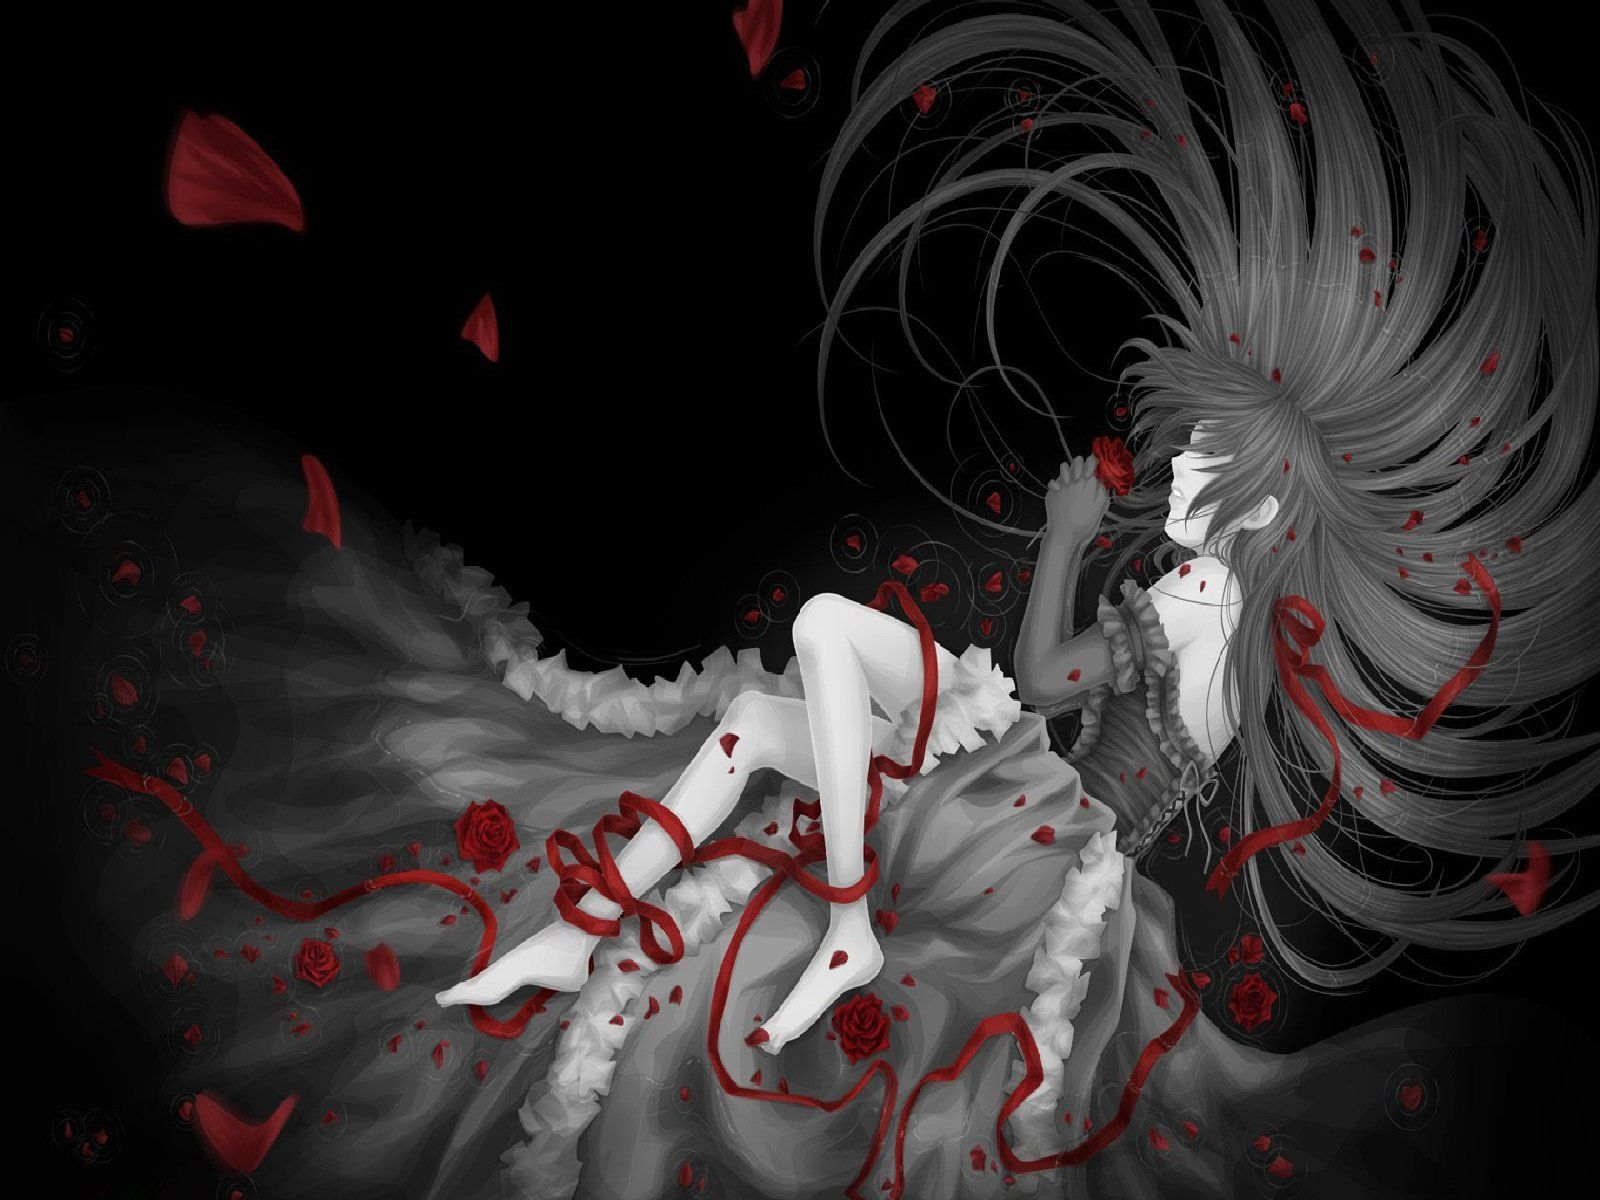 Sad Girl With Rose Wallpaper Dark Anime Wallpaper Android Apps On Google Play 1598 215 1178